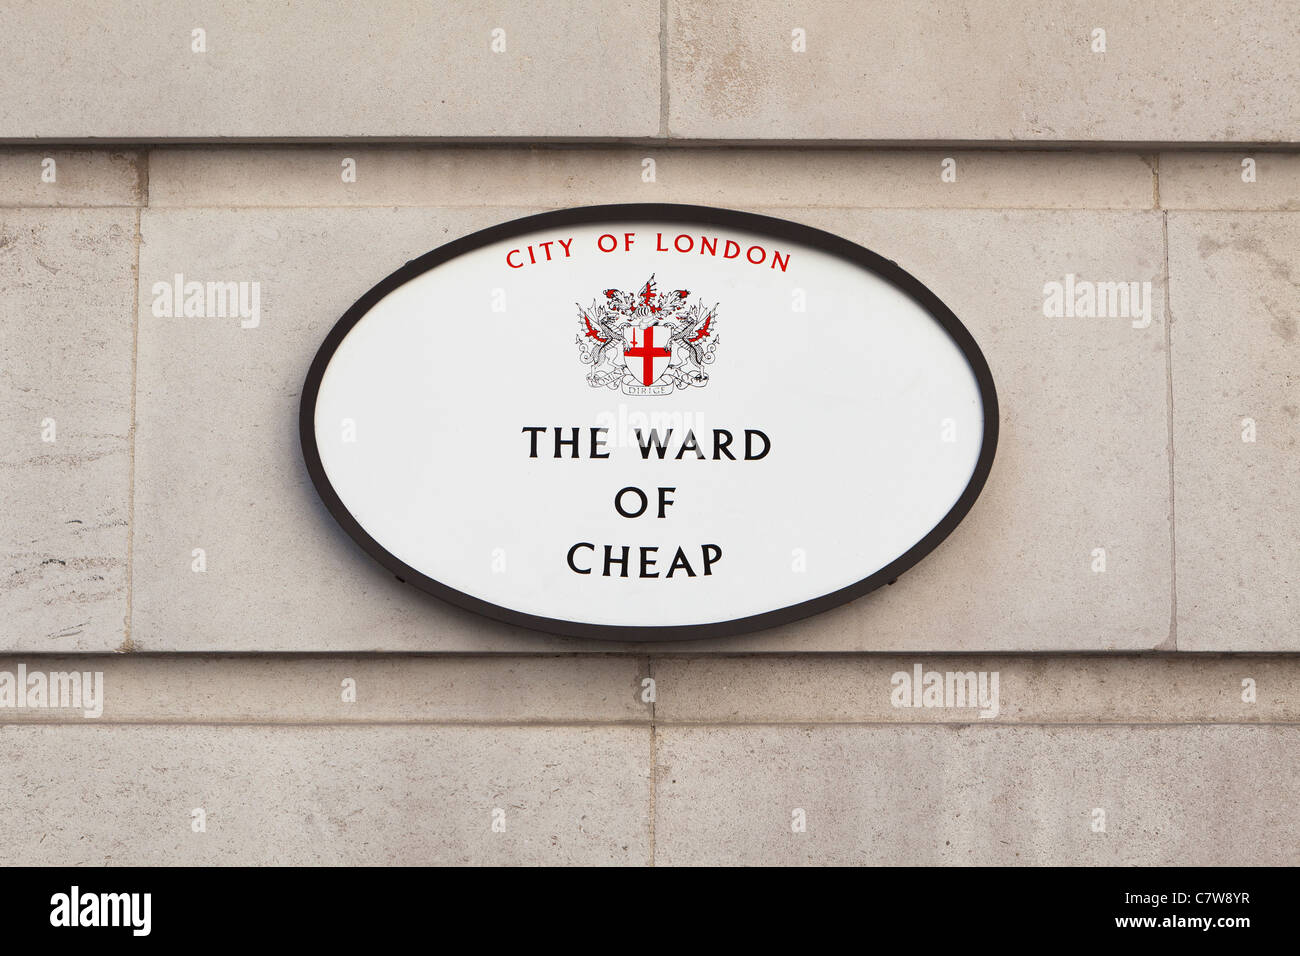 The Ward of Cheap sign, London, England - Stock Image